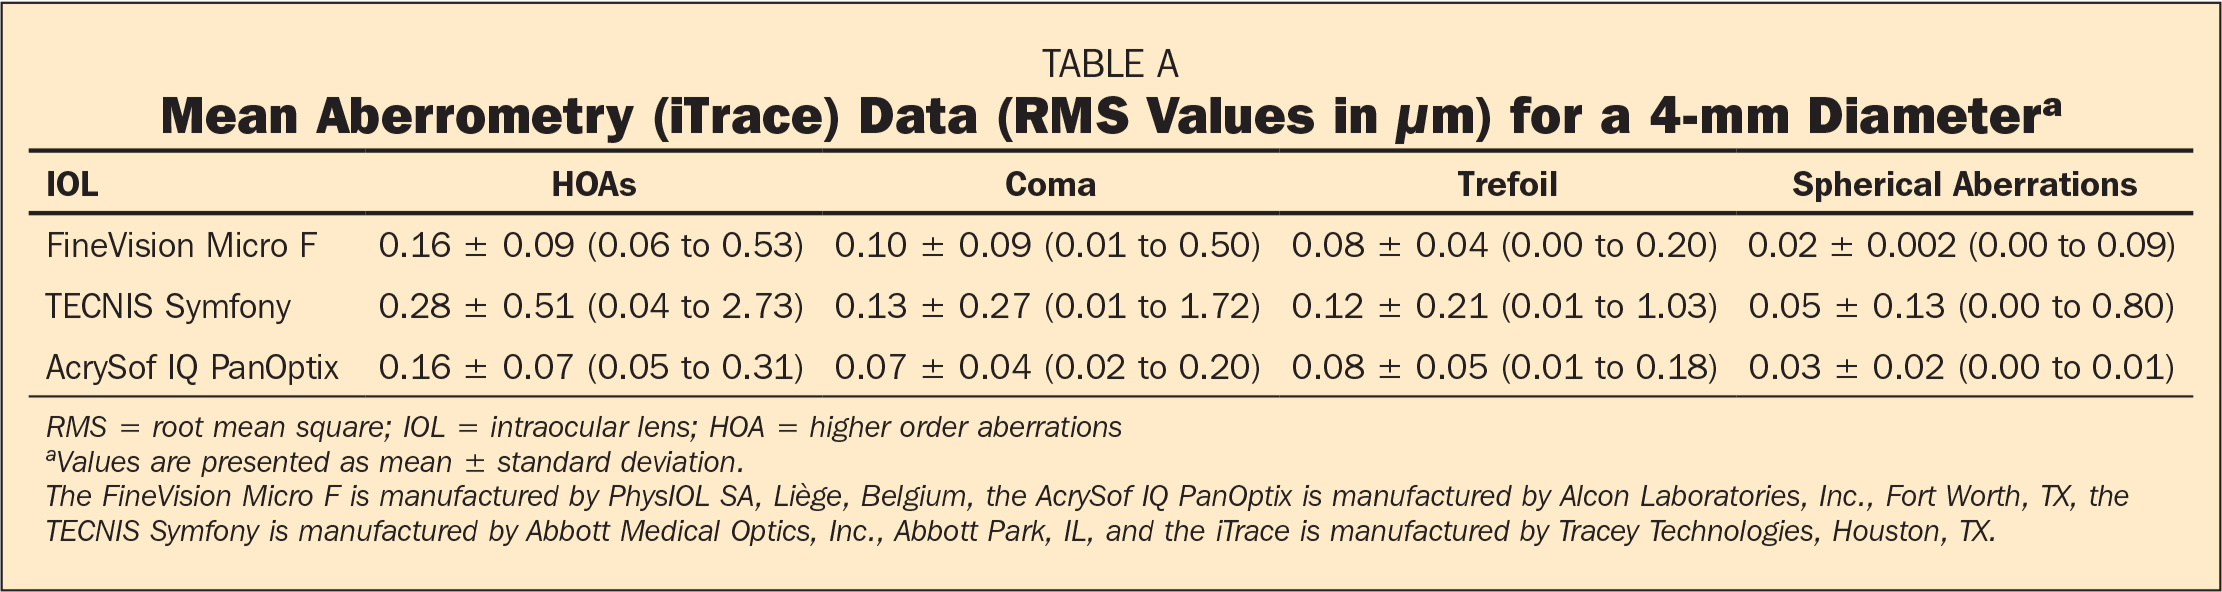 Mean Aberrometry (iTrace) Data (RMS Values in μm) for a 4-mm Diametera